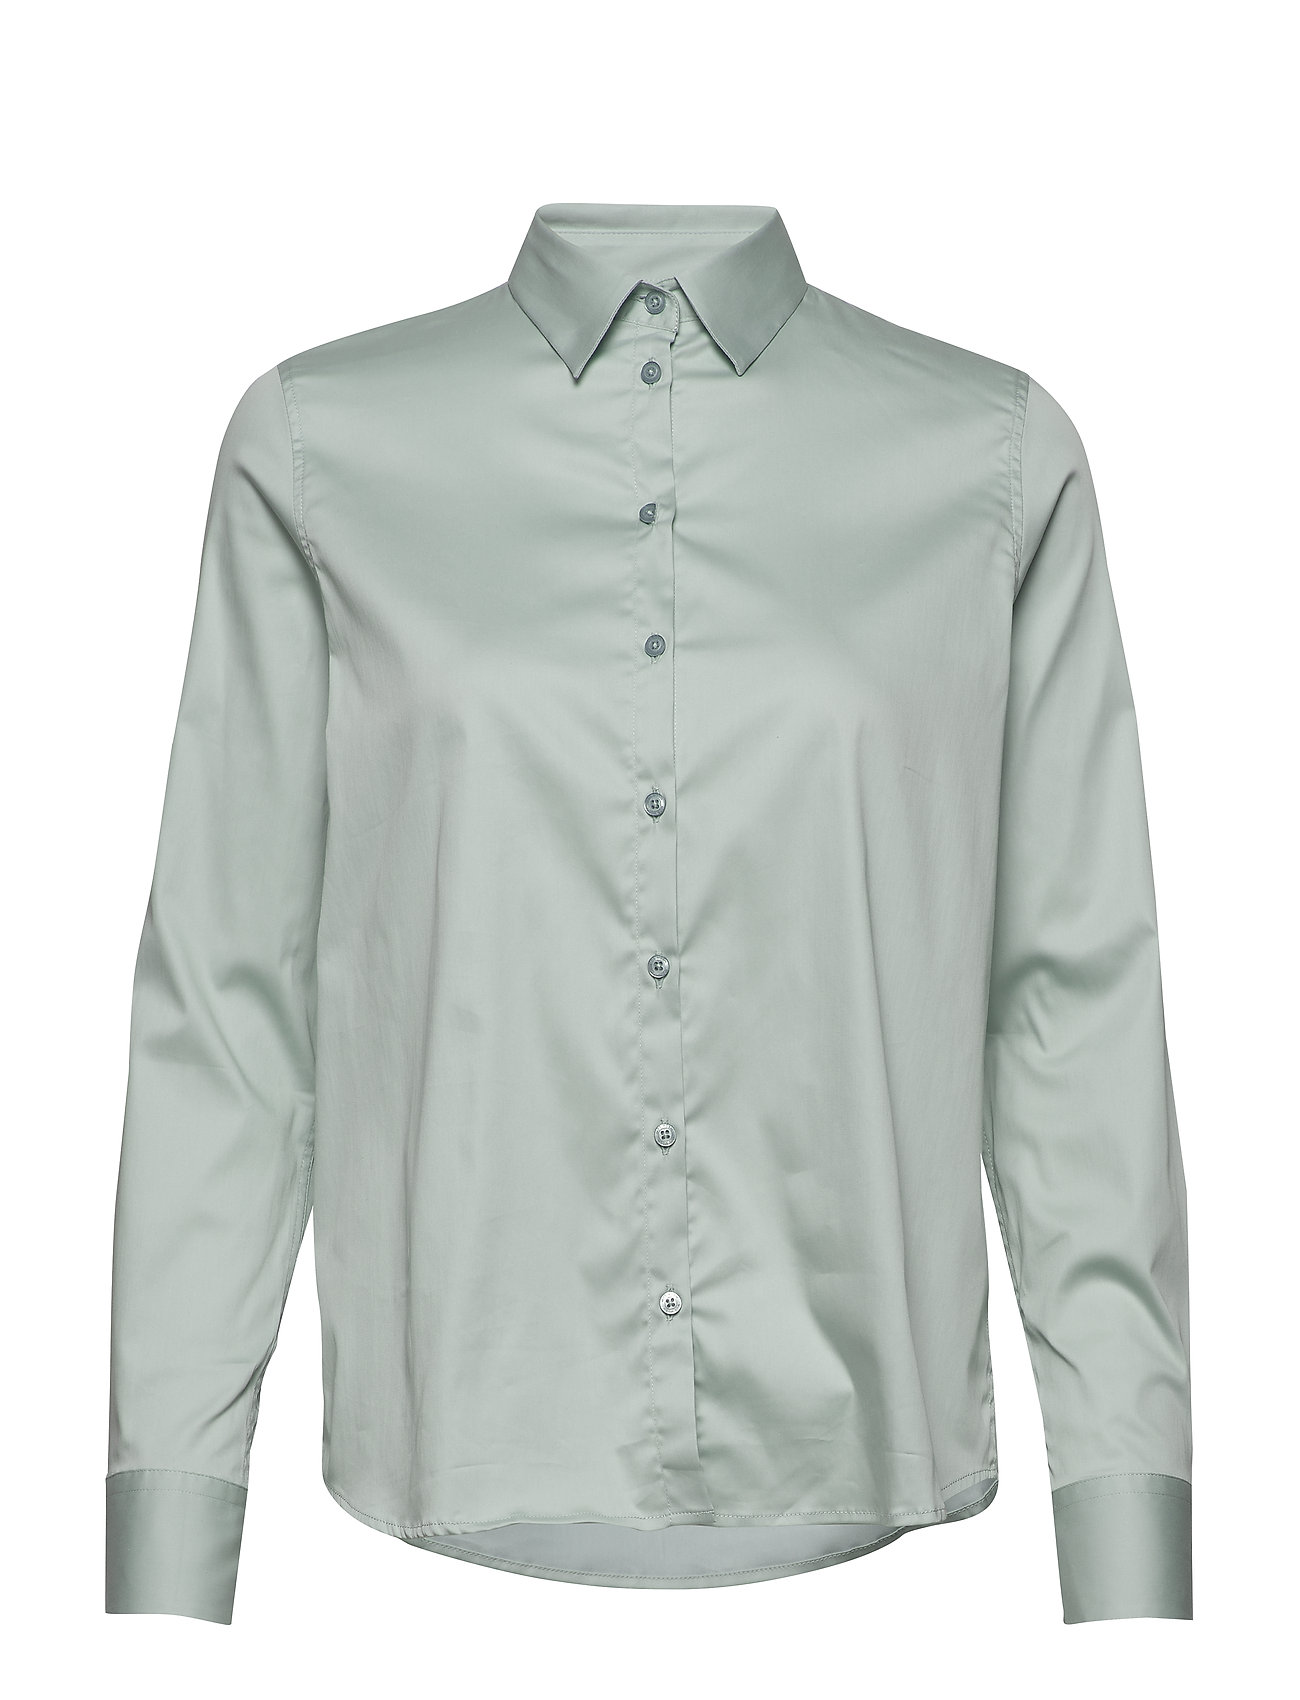 Image of Martina Sustainable Shirt Langærmet Skjorte Grøn MOS MOSH (3350776969)